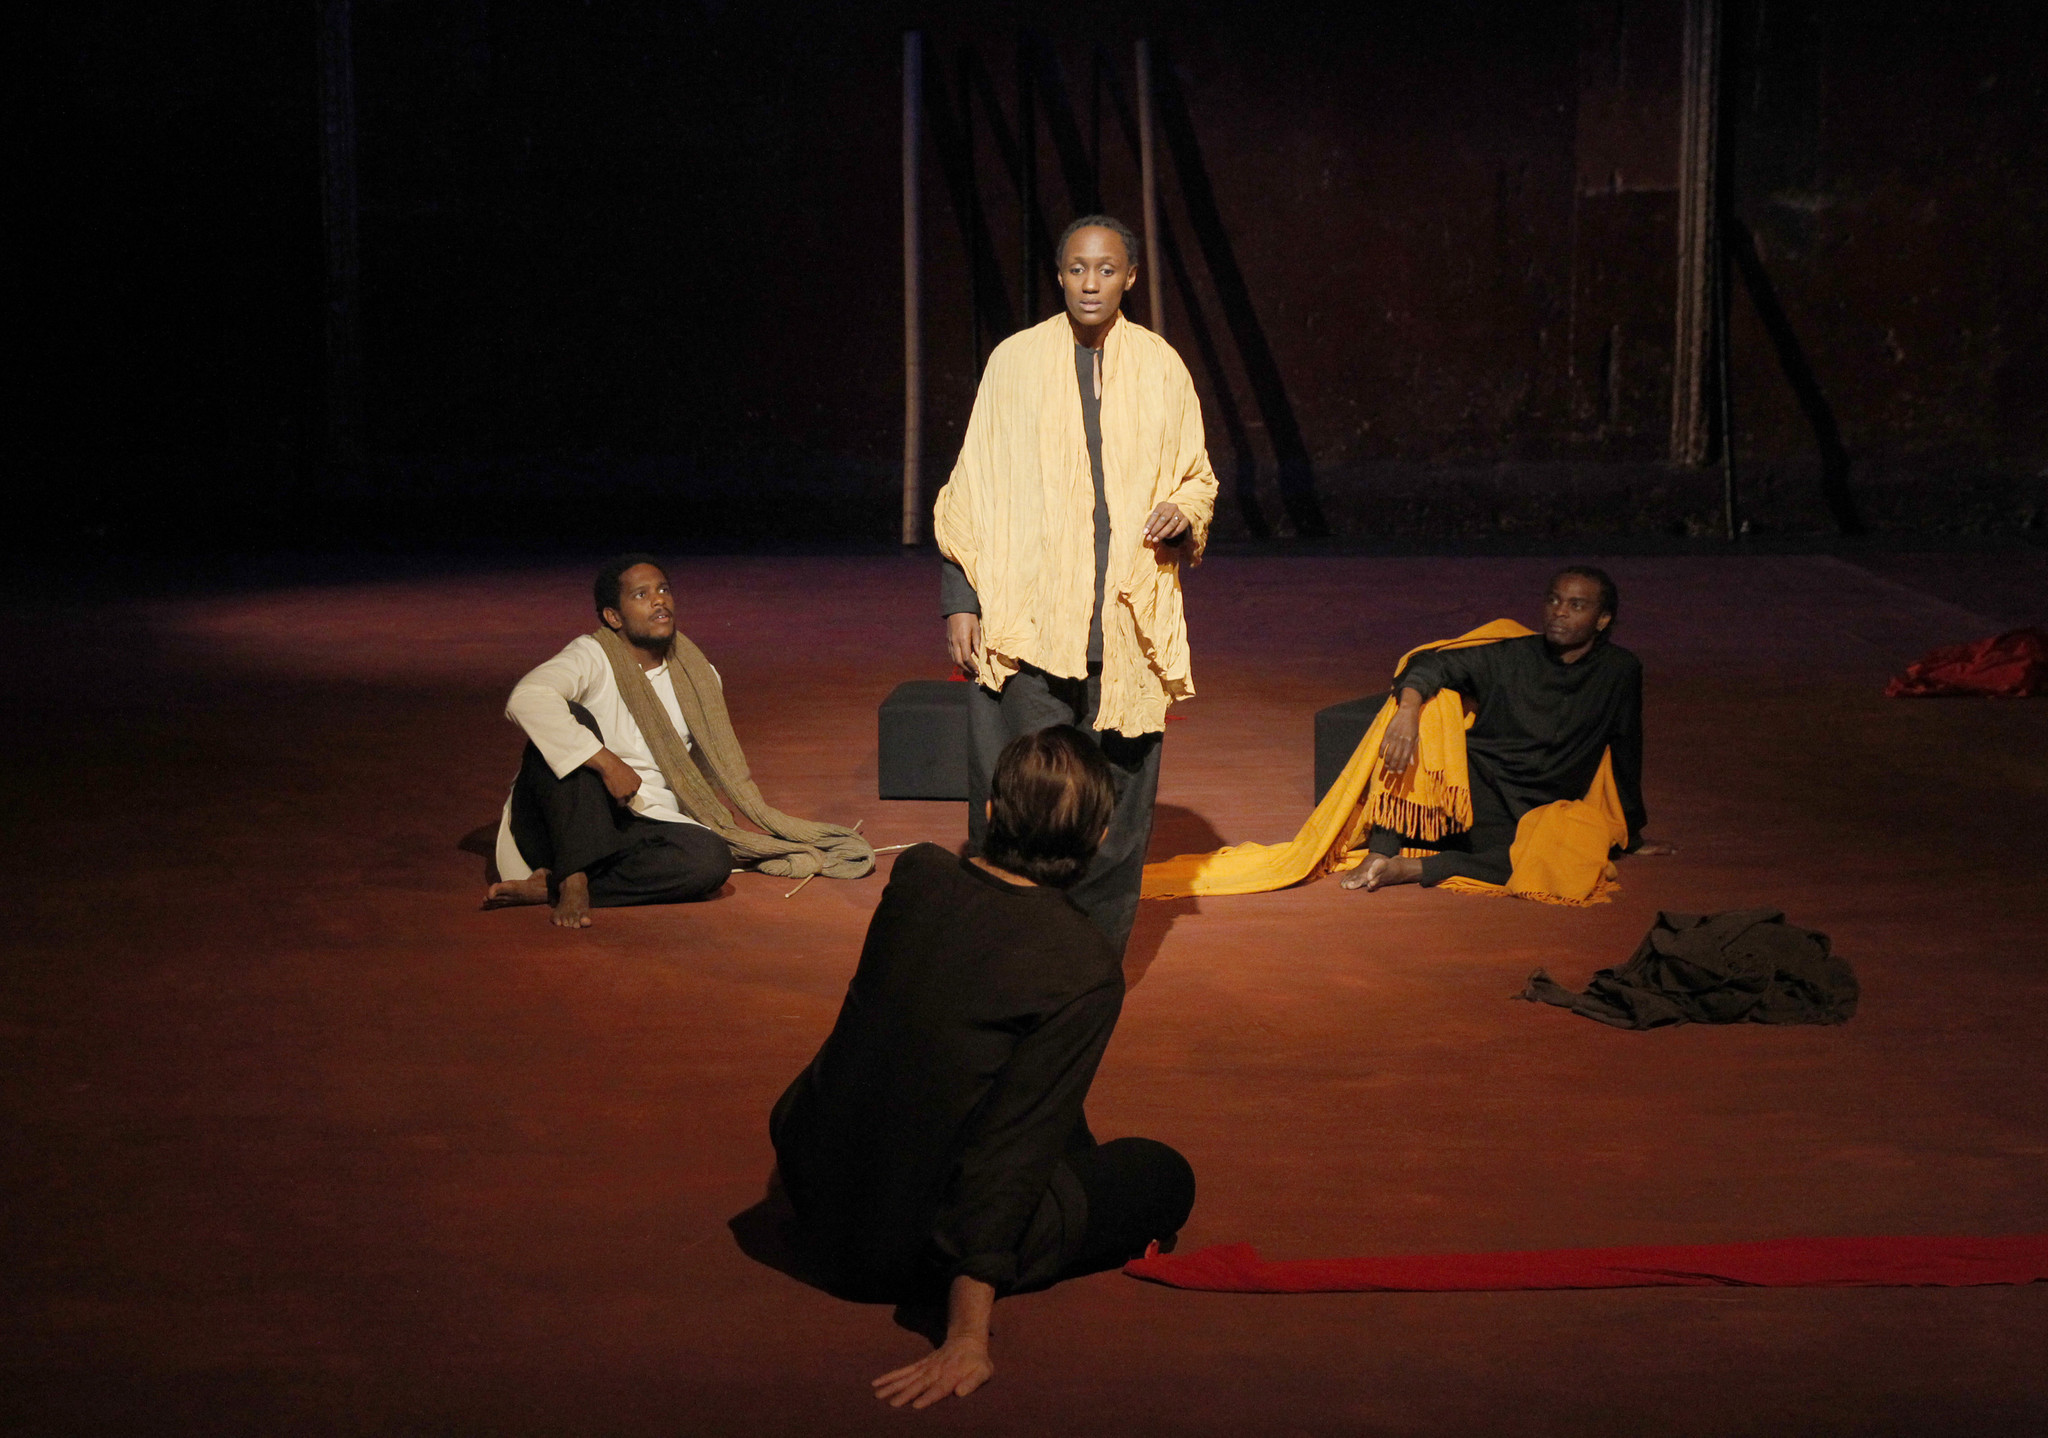 Carole Karemera surrounded by, from left, Jared McNeill, Sean O'Callaghan and Ery Nzaramba in Peter Brook's